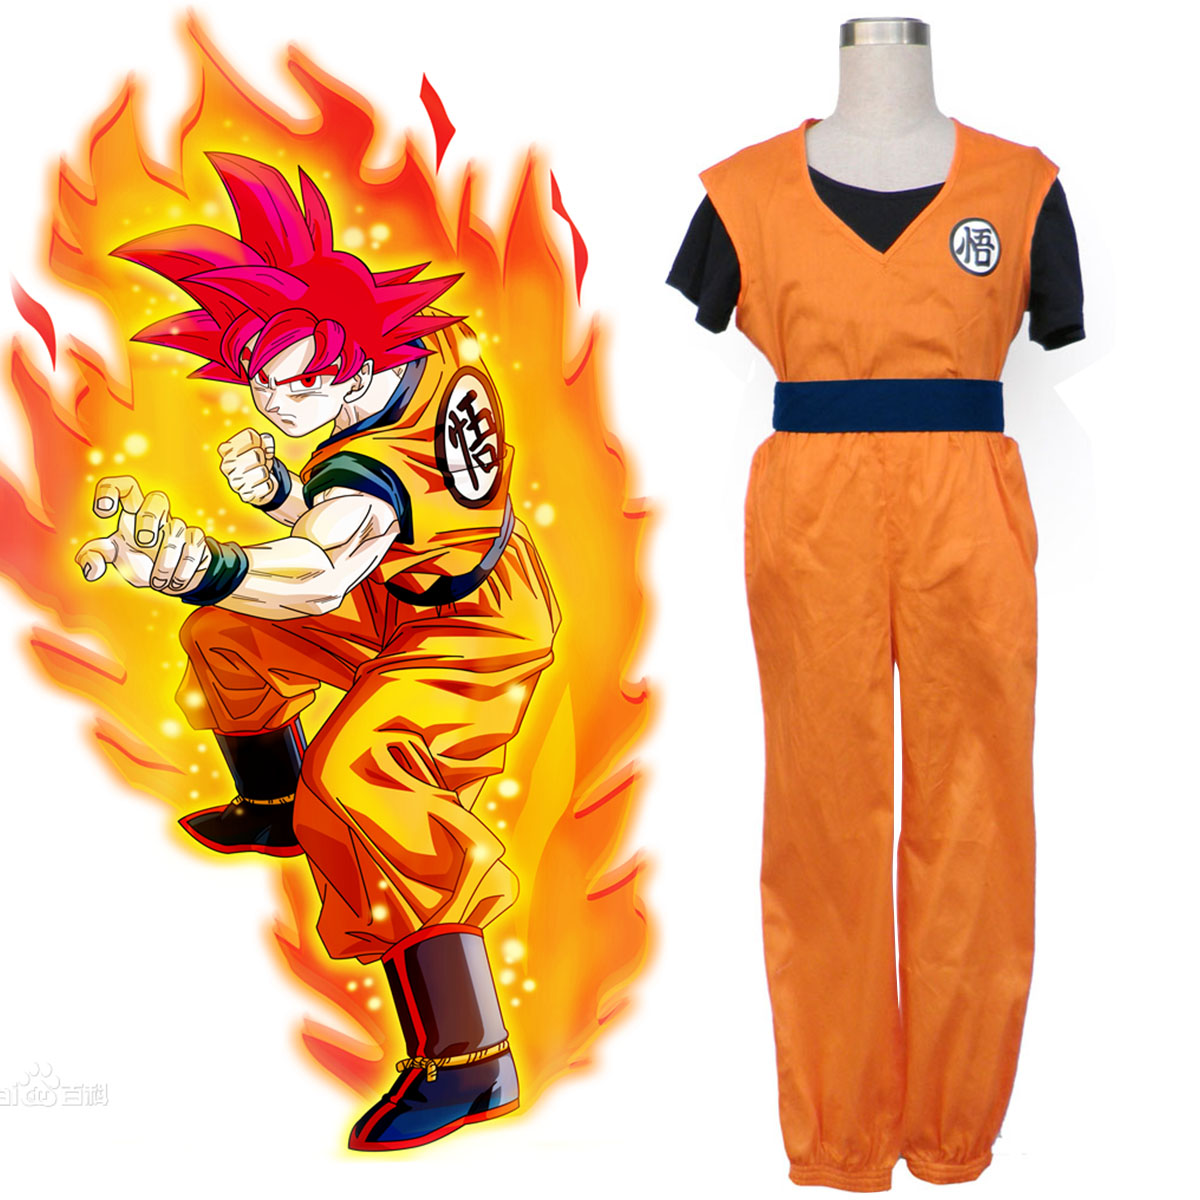 Dragon Ball Son Goku 2 Cosplay Costumes New Zealand Online Store